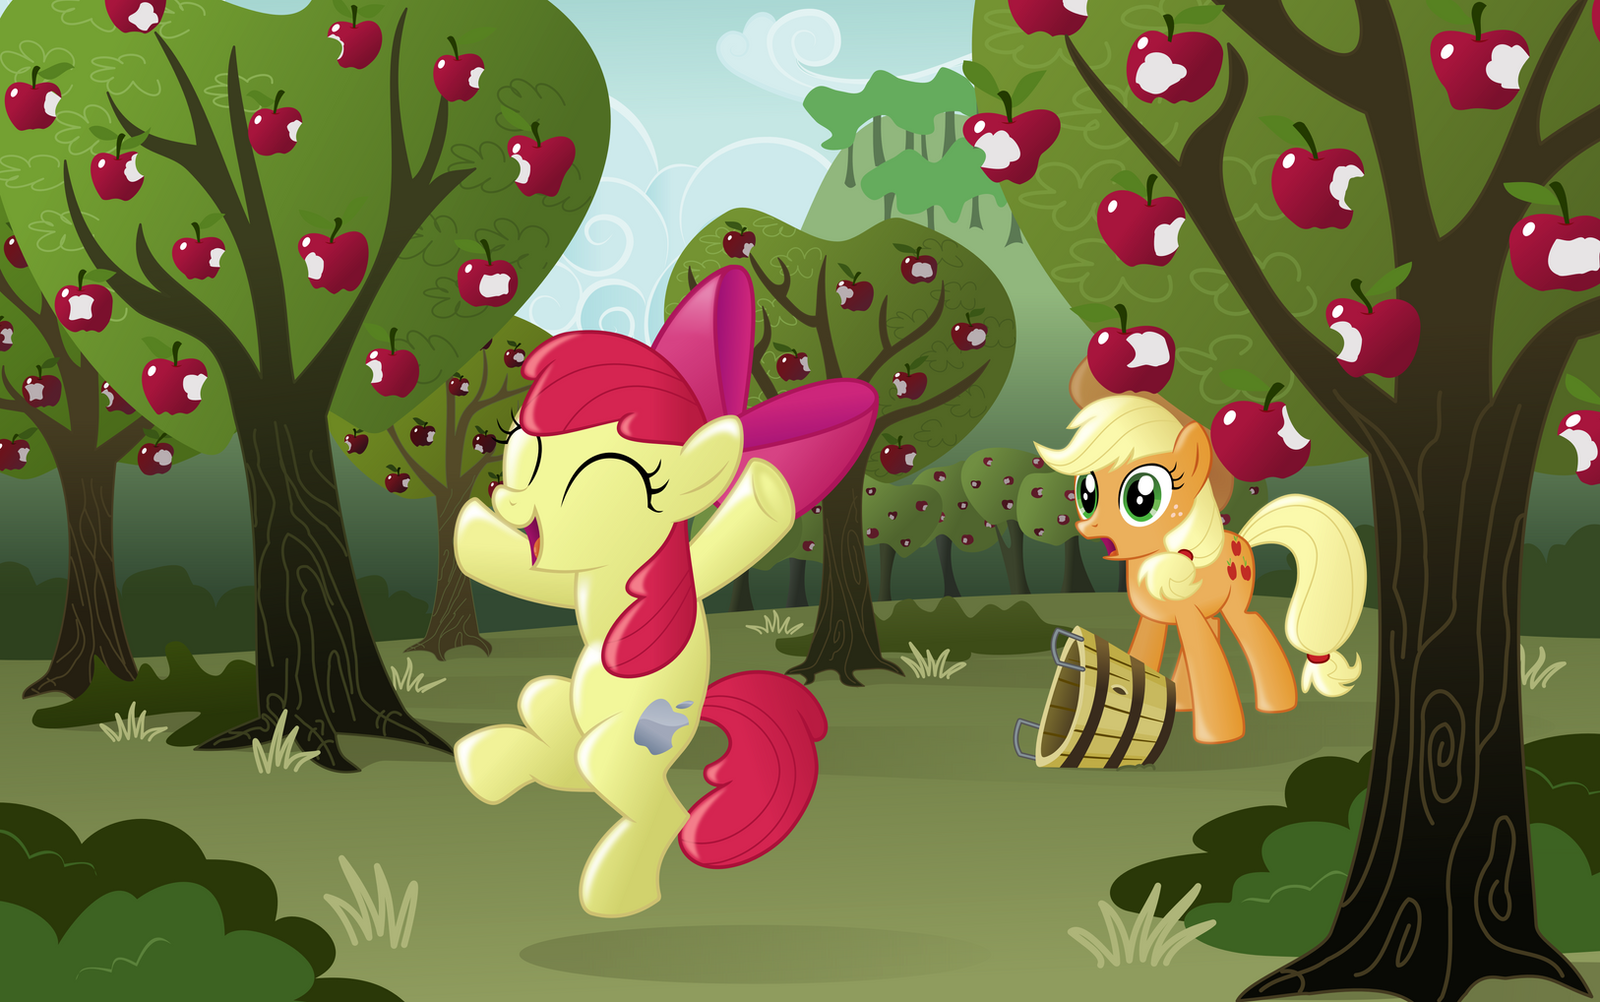 Apples Apples APPLES by BlackGryph0n